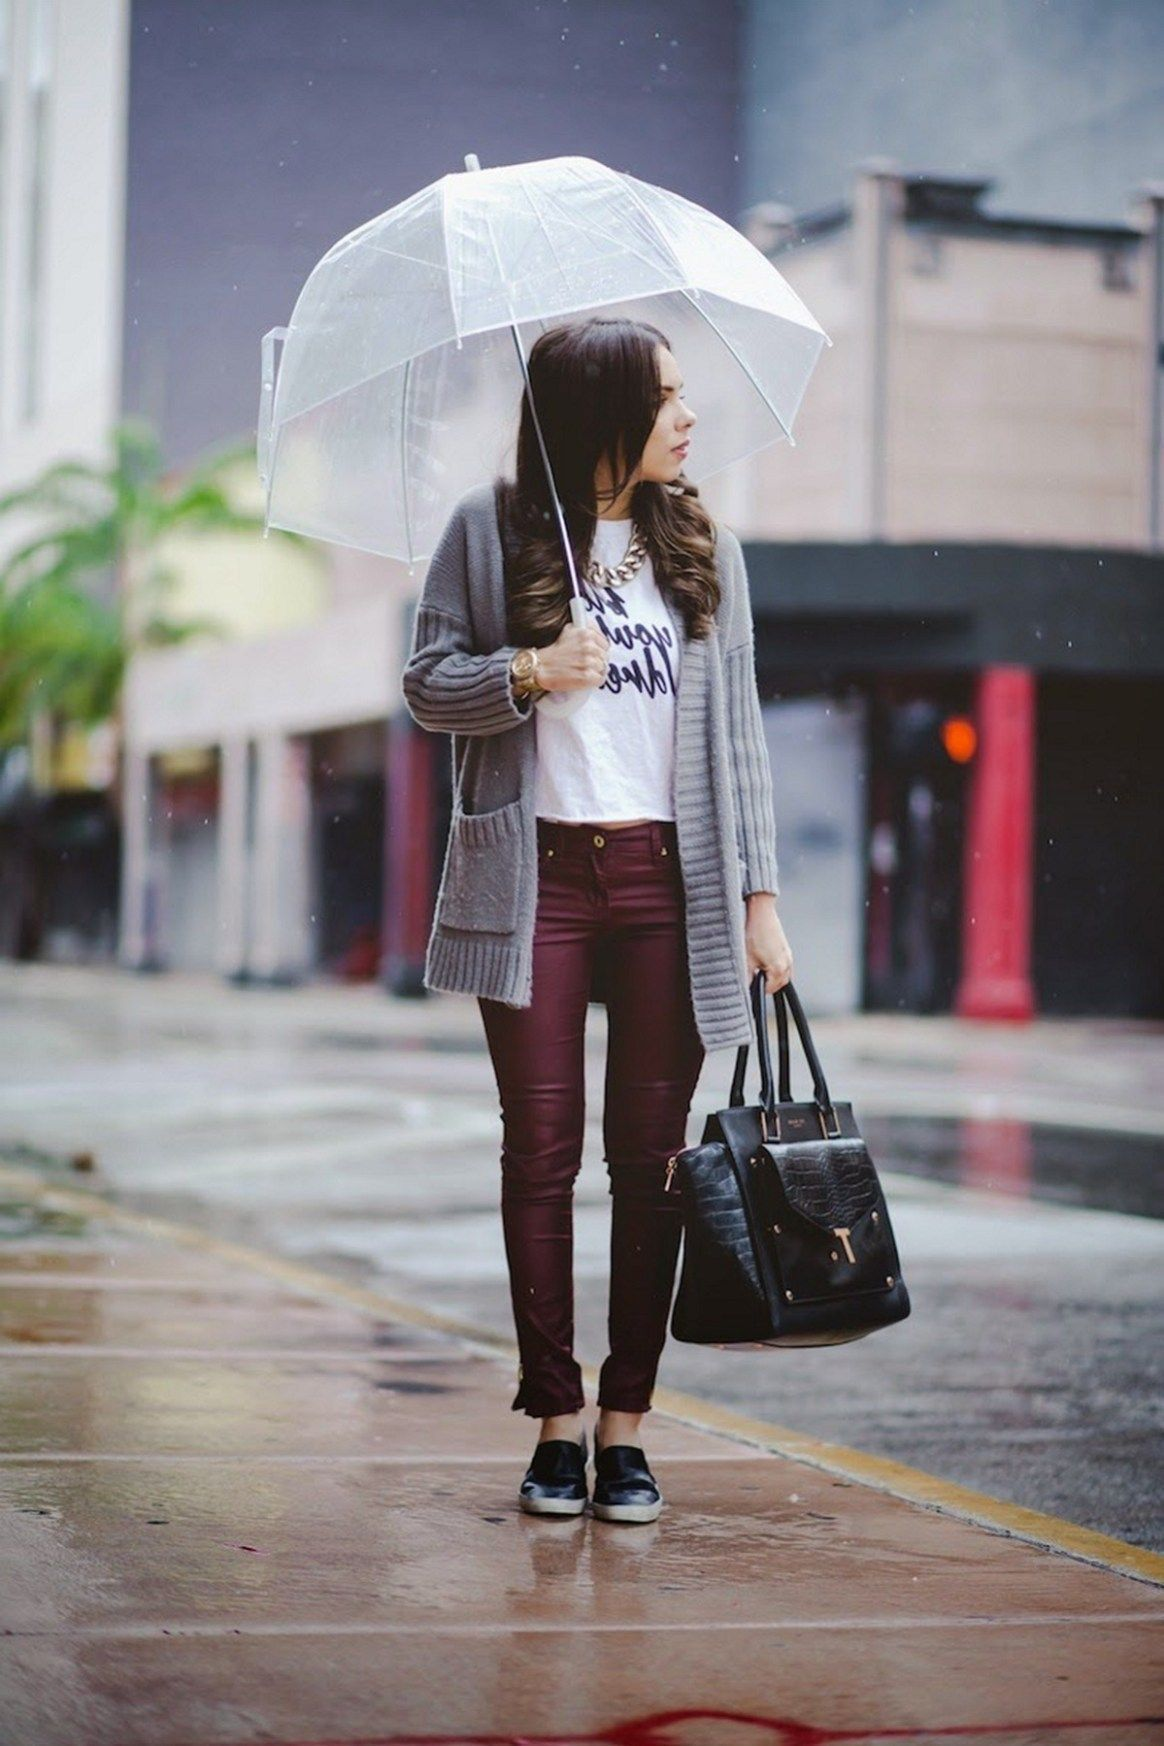 64 Rainy Day Cold Weather Outfit • DressFitMe #coldrainydayoutfit 64 Rainy Day...